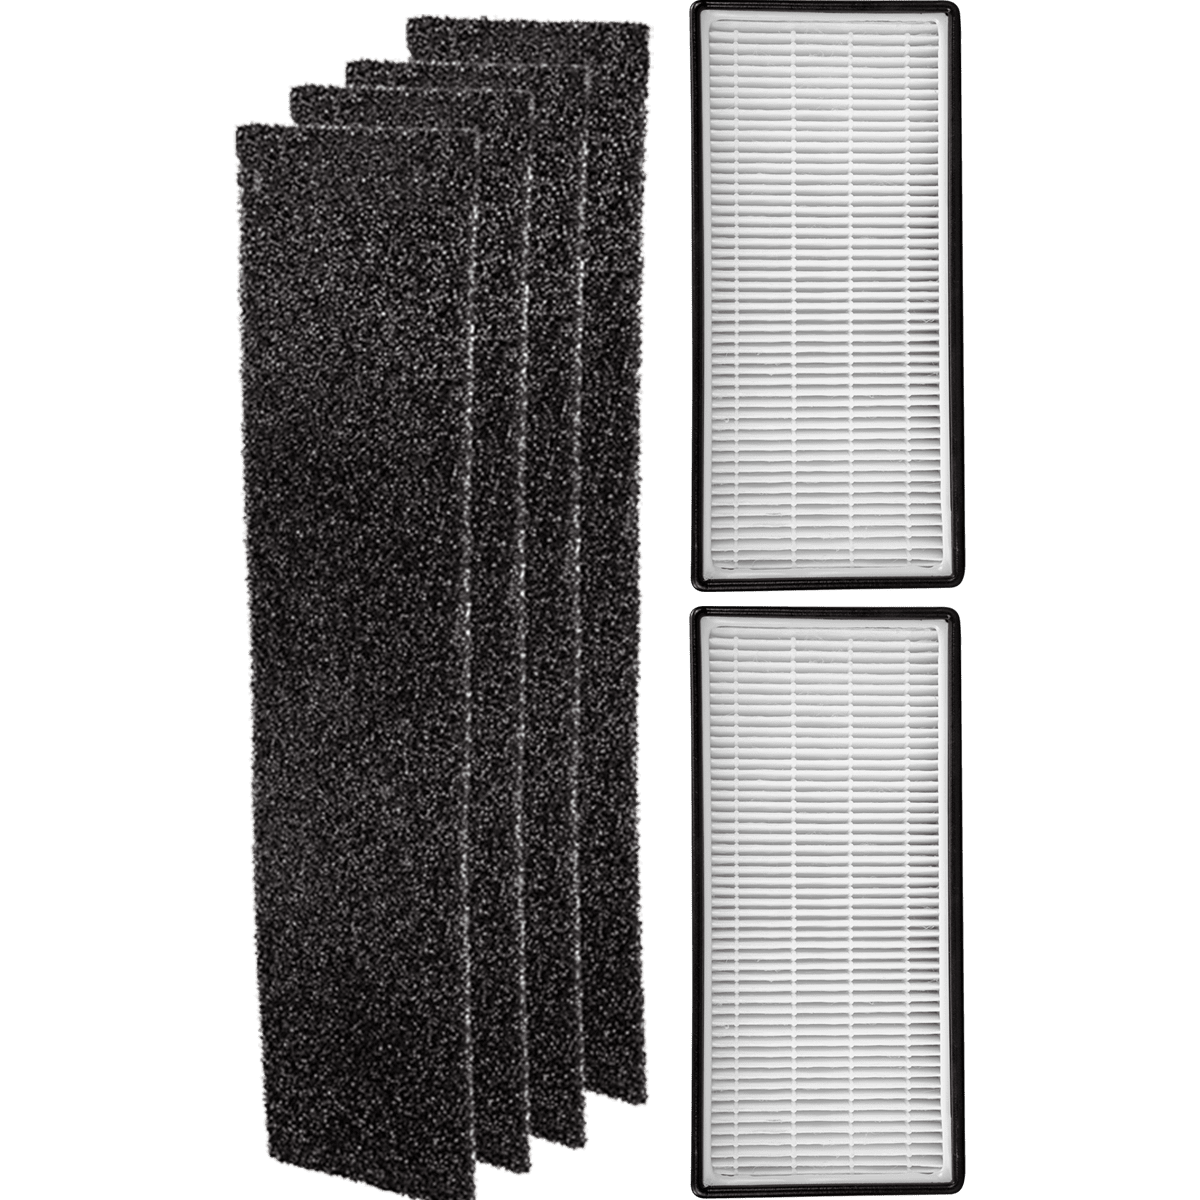 Filter-Monster Replacement Filter Kit for Whirlpool Tower Air Purifiers